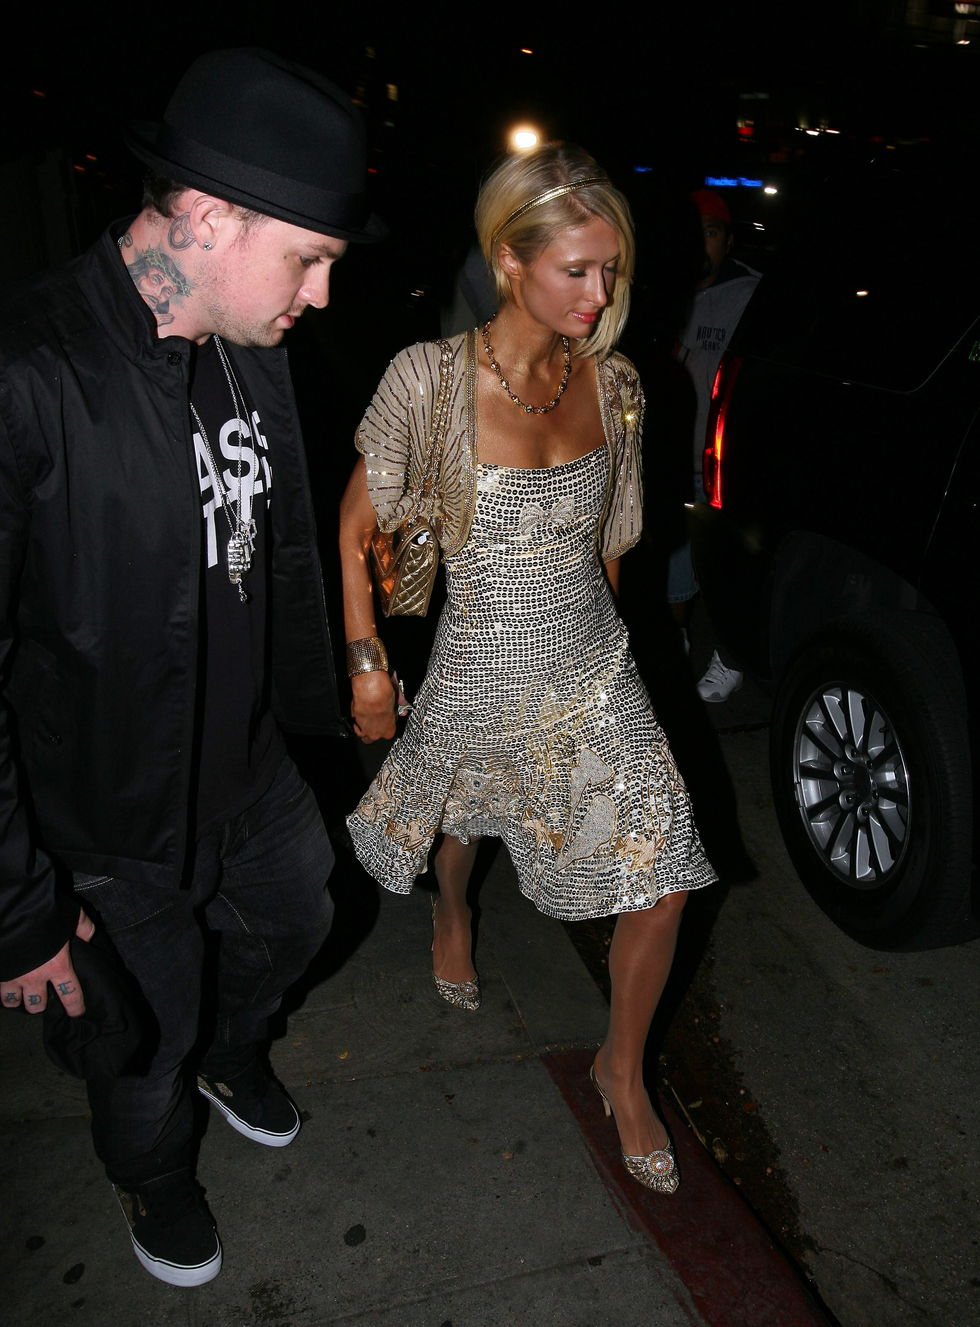 paris-hilton-at-chateau-marmont-hotel-in-hollywood-01